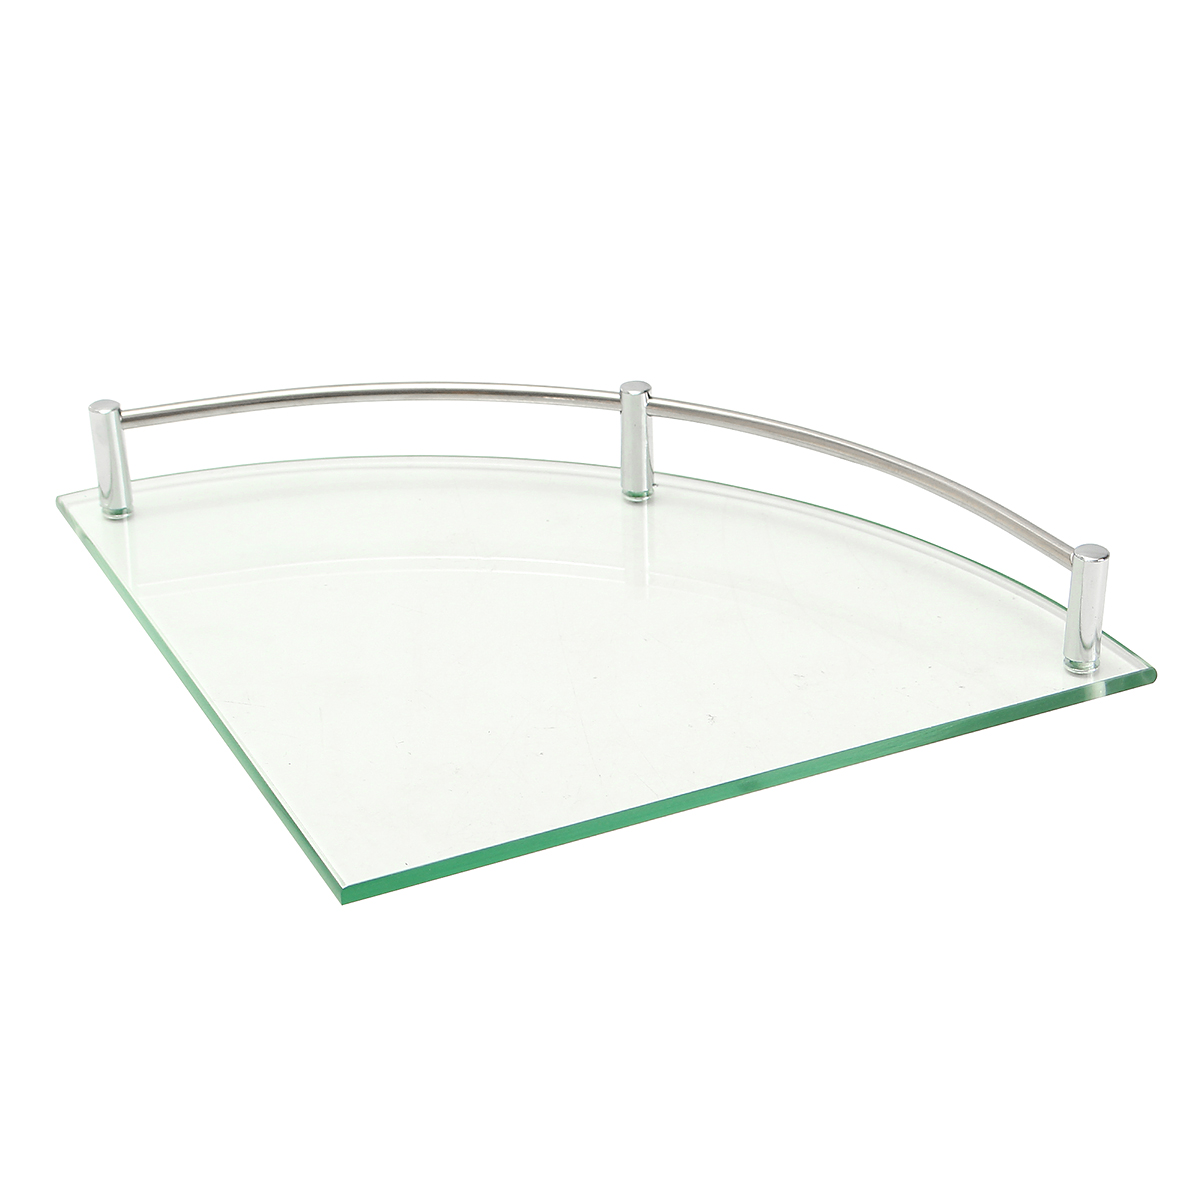 Bathroom Glass Bath Shower Triangular Shelf Holder Organizer Single Layer Modern Style Glass Bathroom Shelves